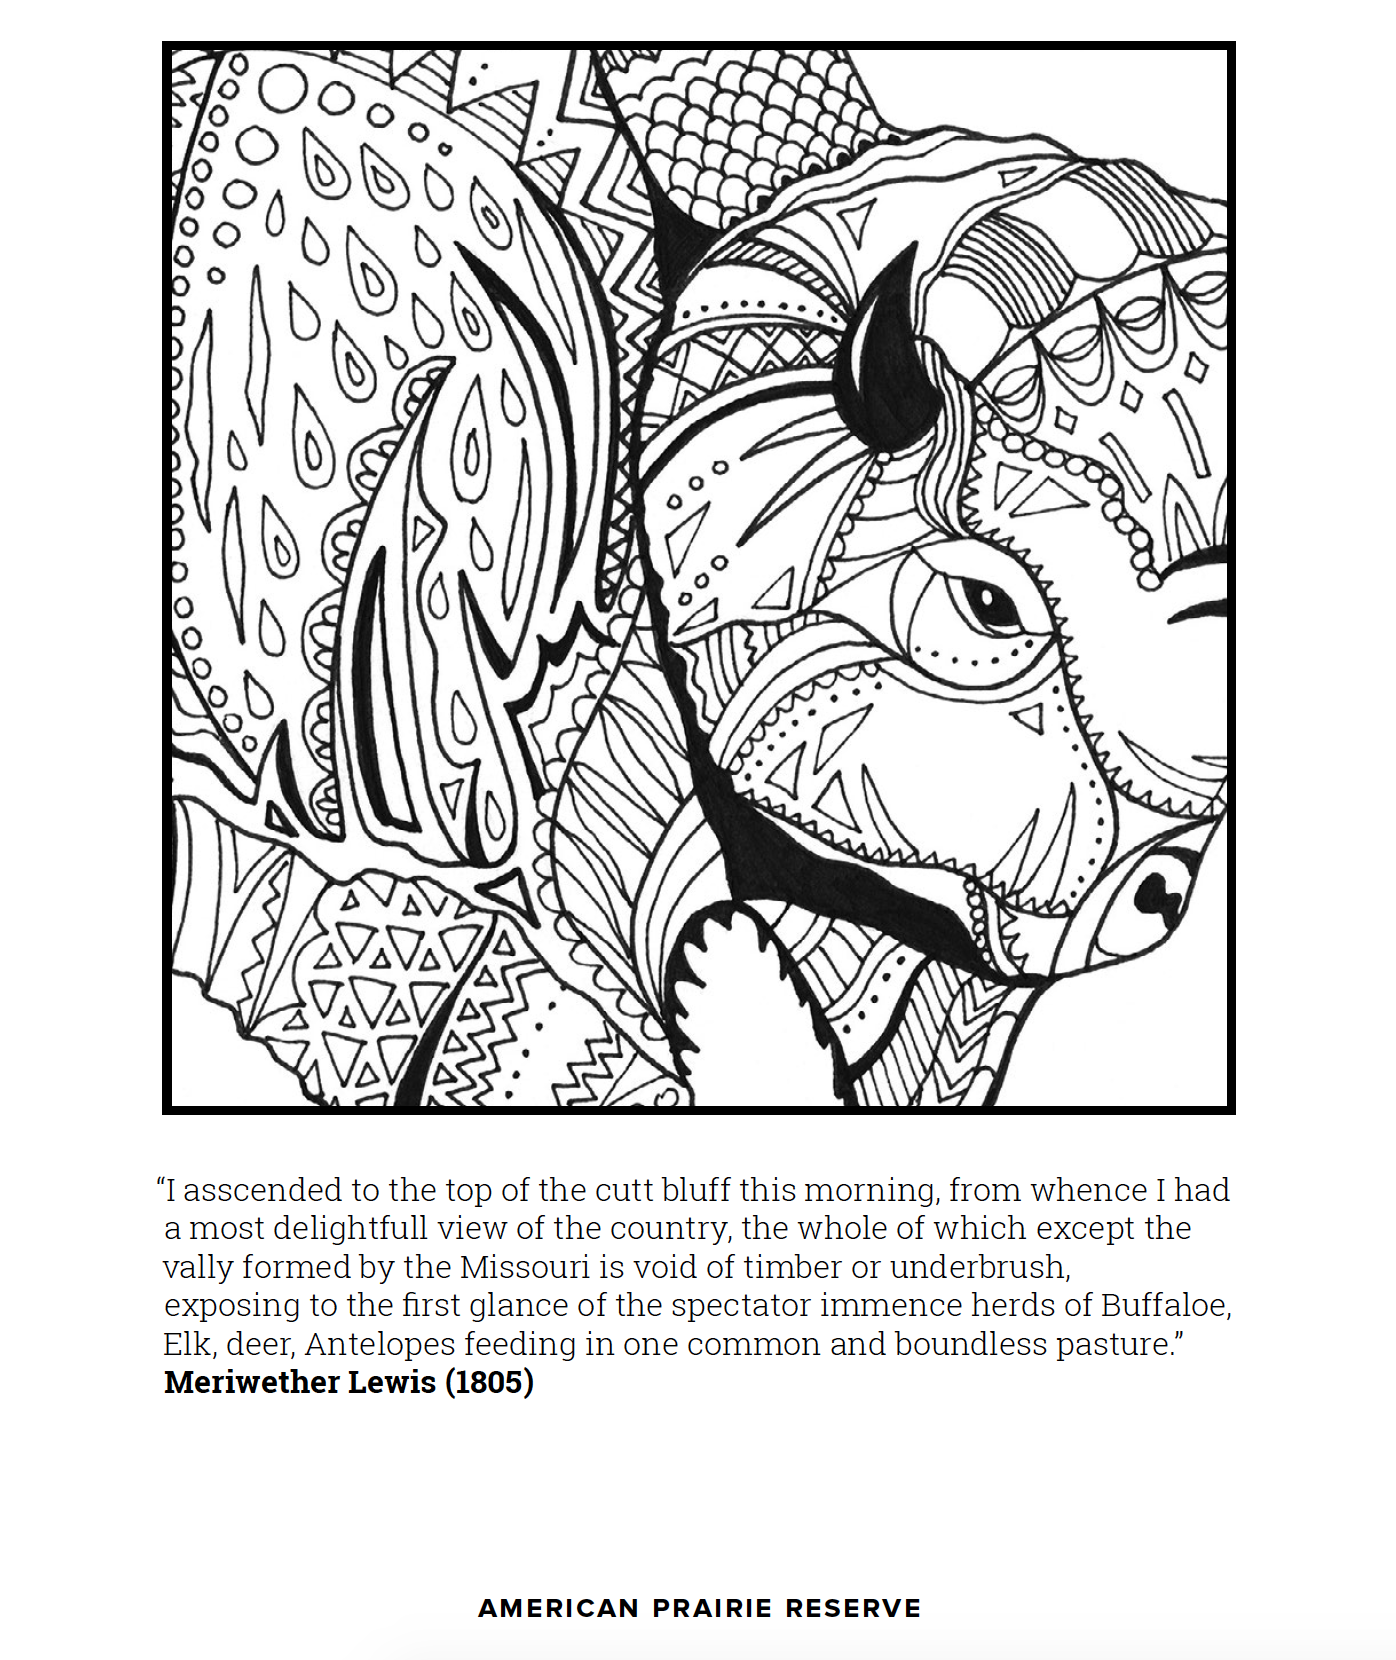 Free buffalo coloring page to download and print at home